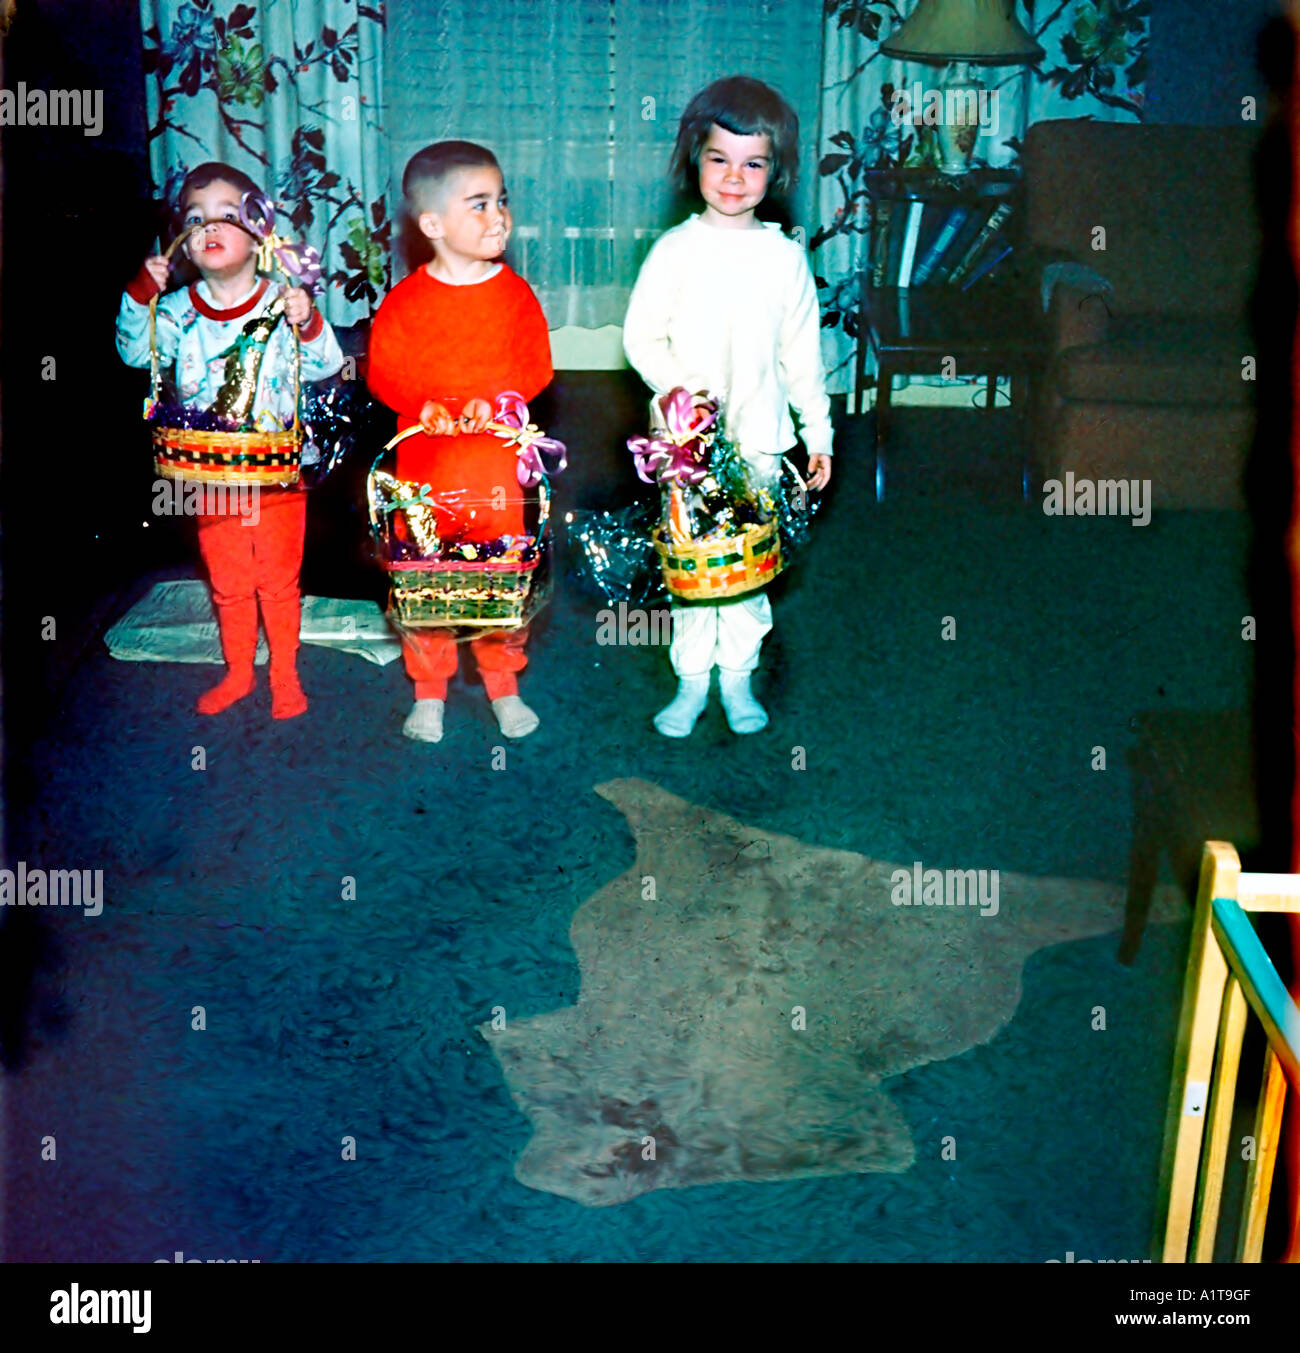 1950's Family Retro Photo,  Children Holding Easter Baskets at Home in Living Room, Vintage Stock Photo